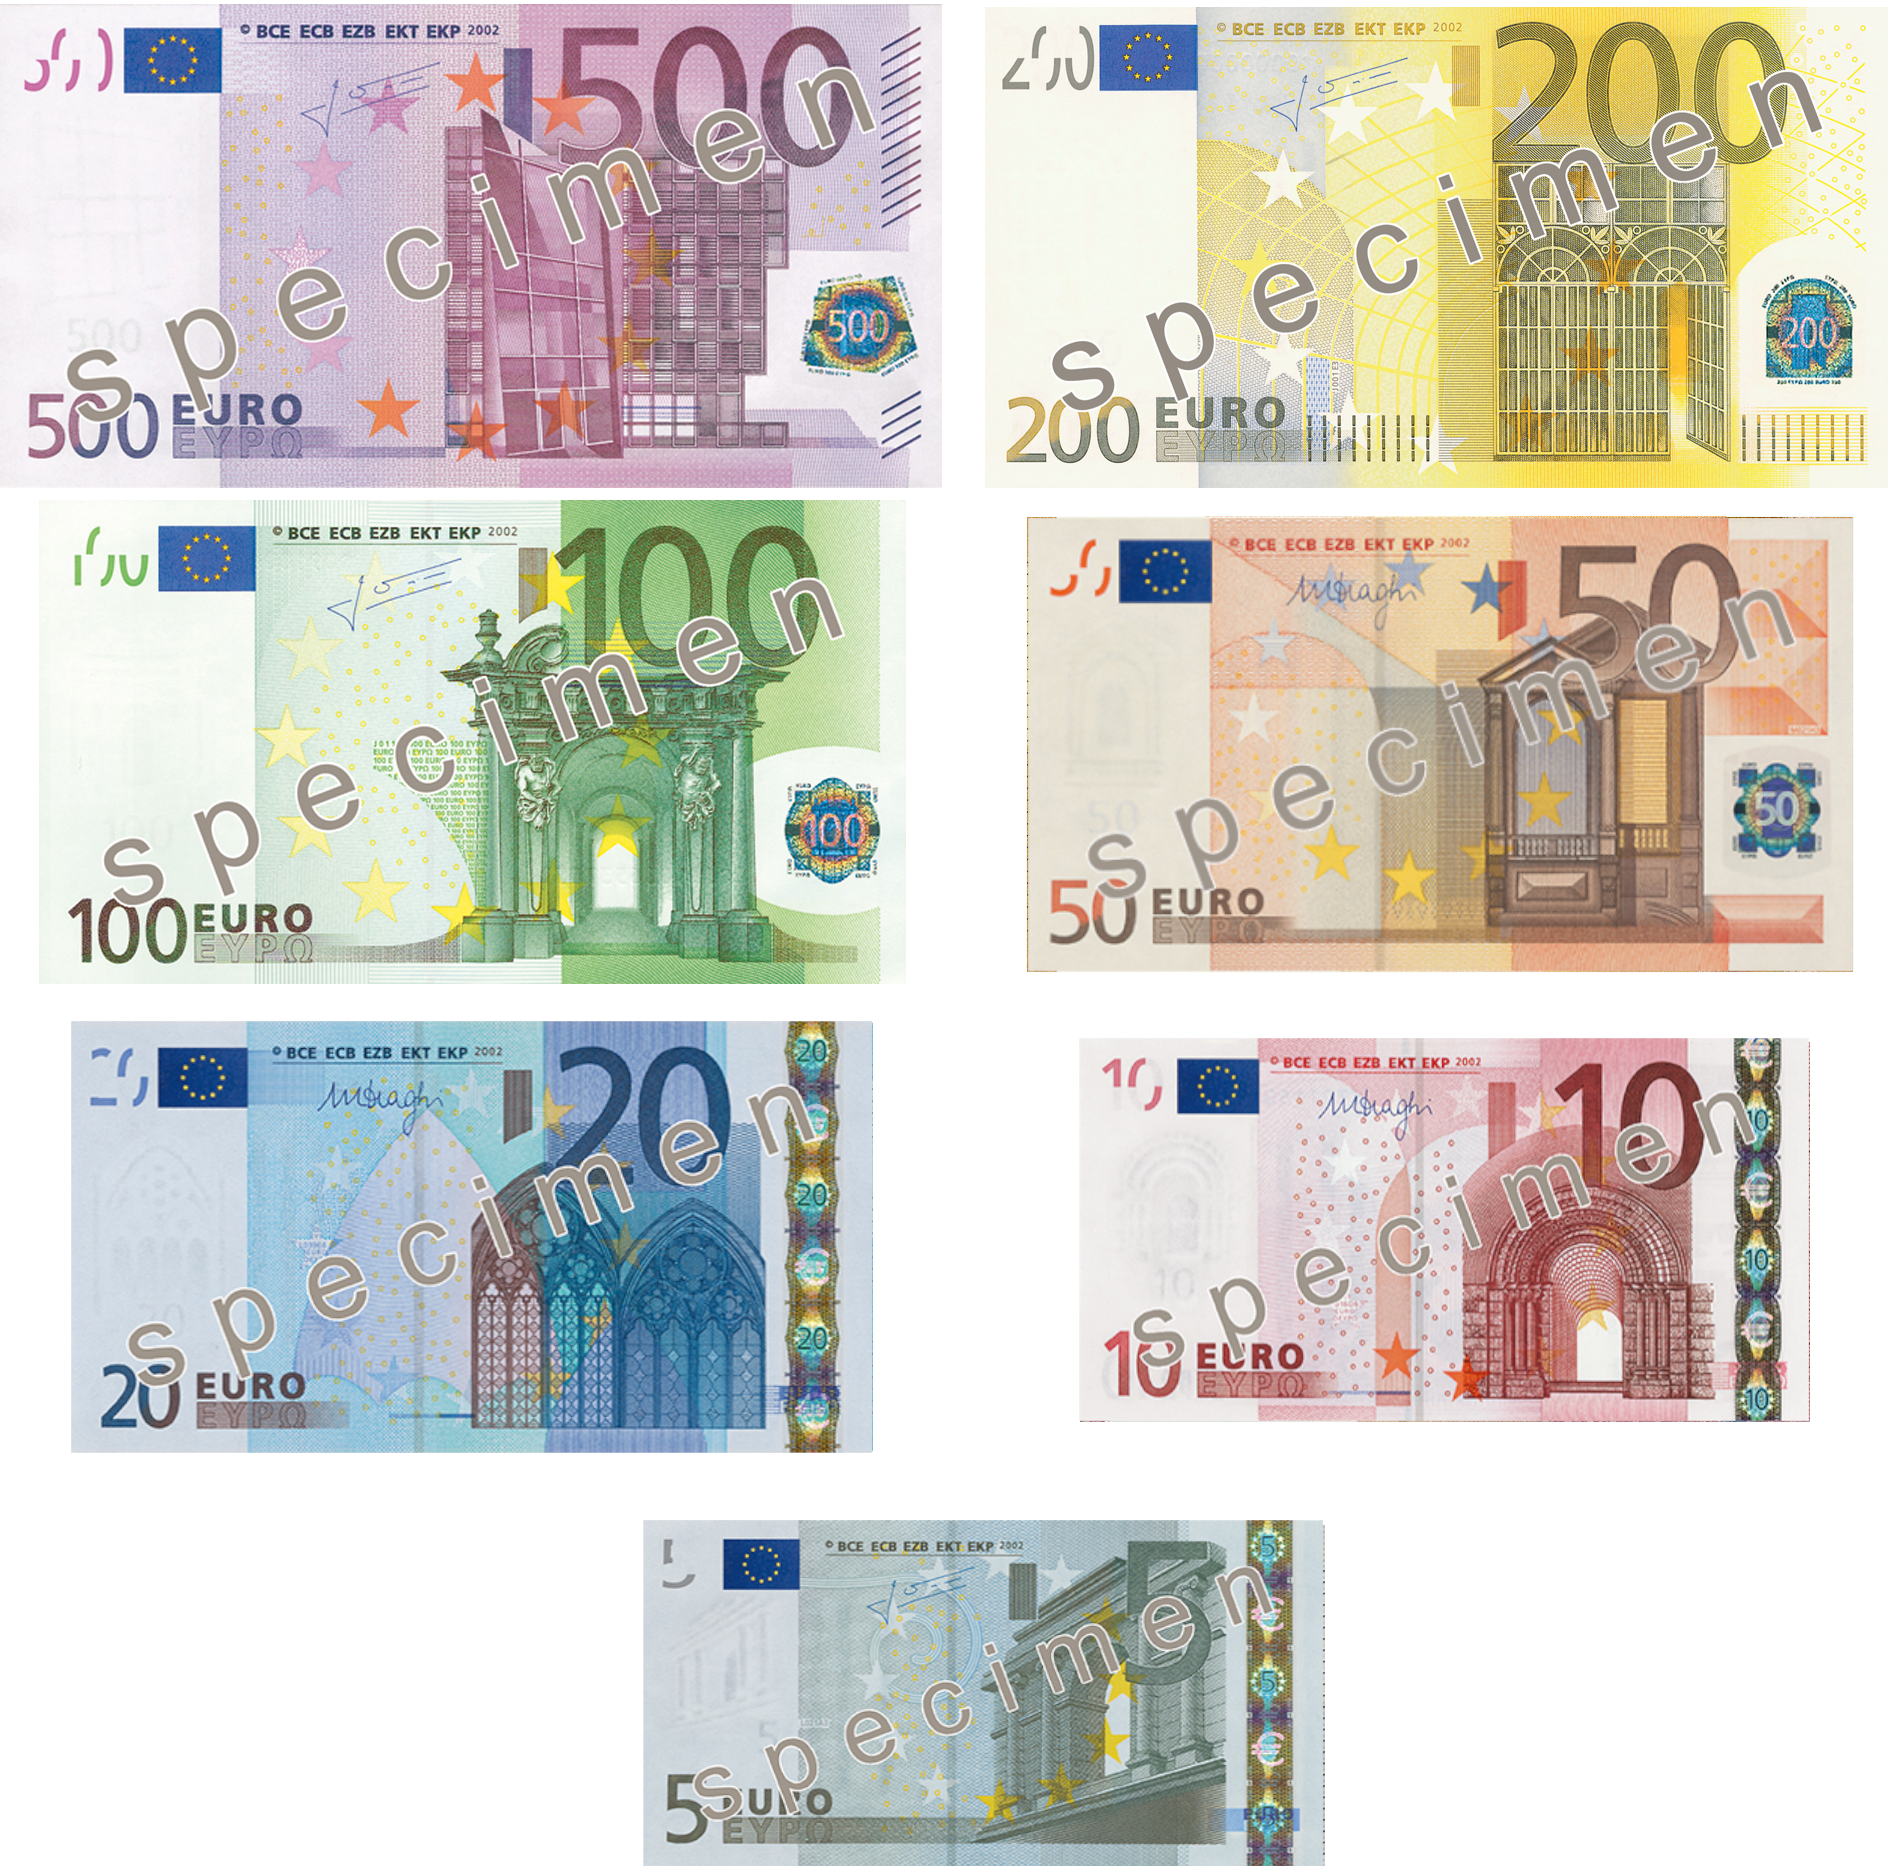 File:Euro Series Banknotes (old).png - Wikimedia Commons